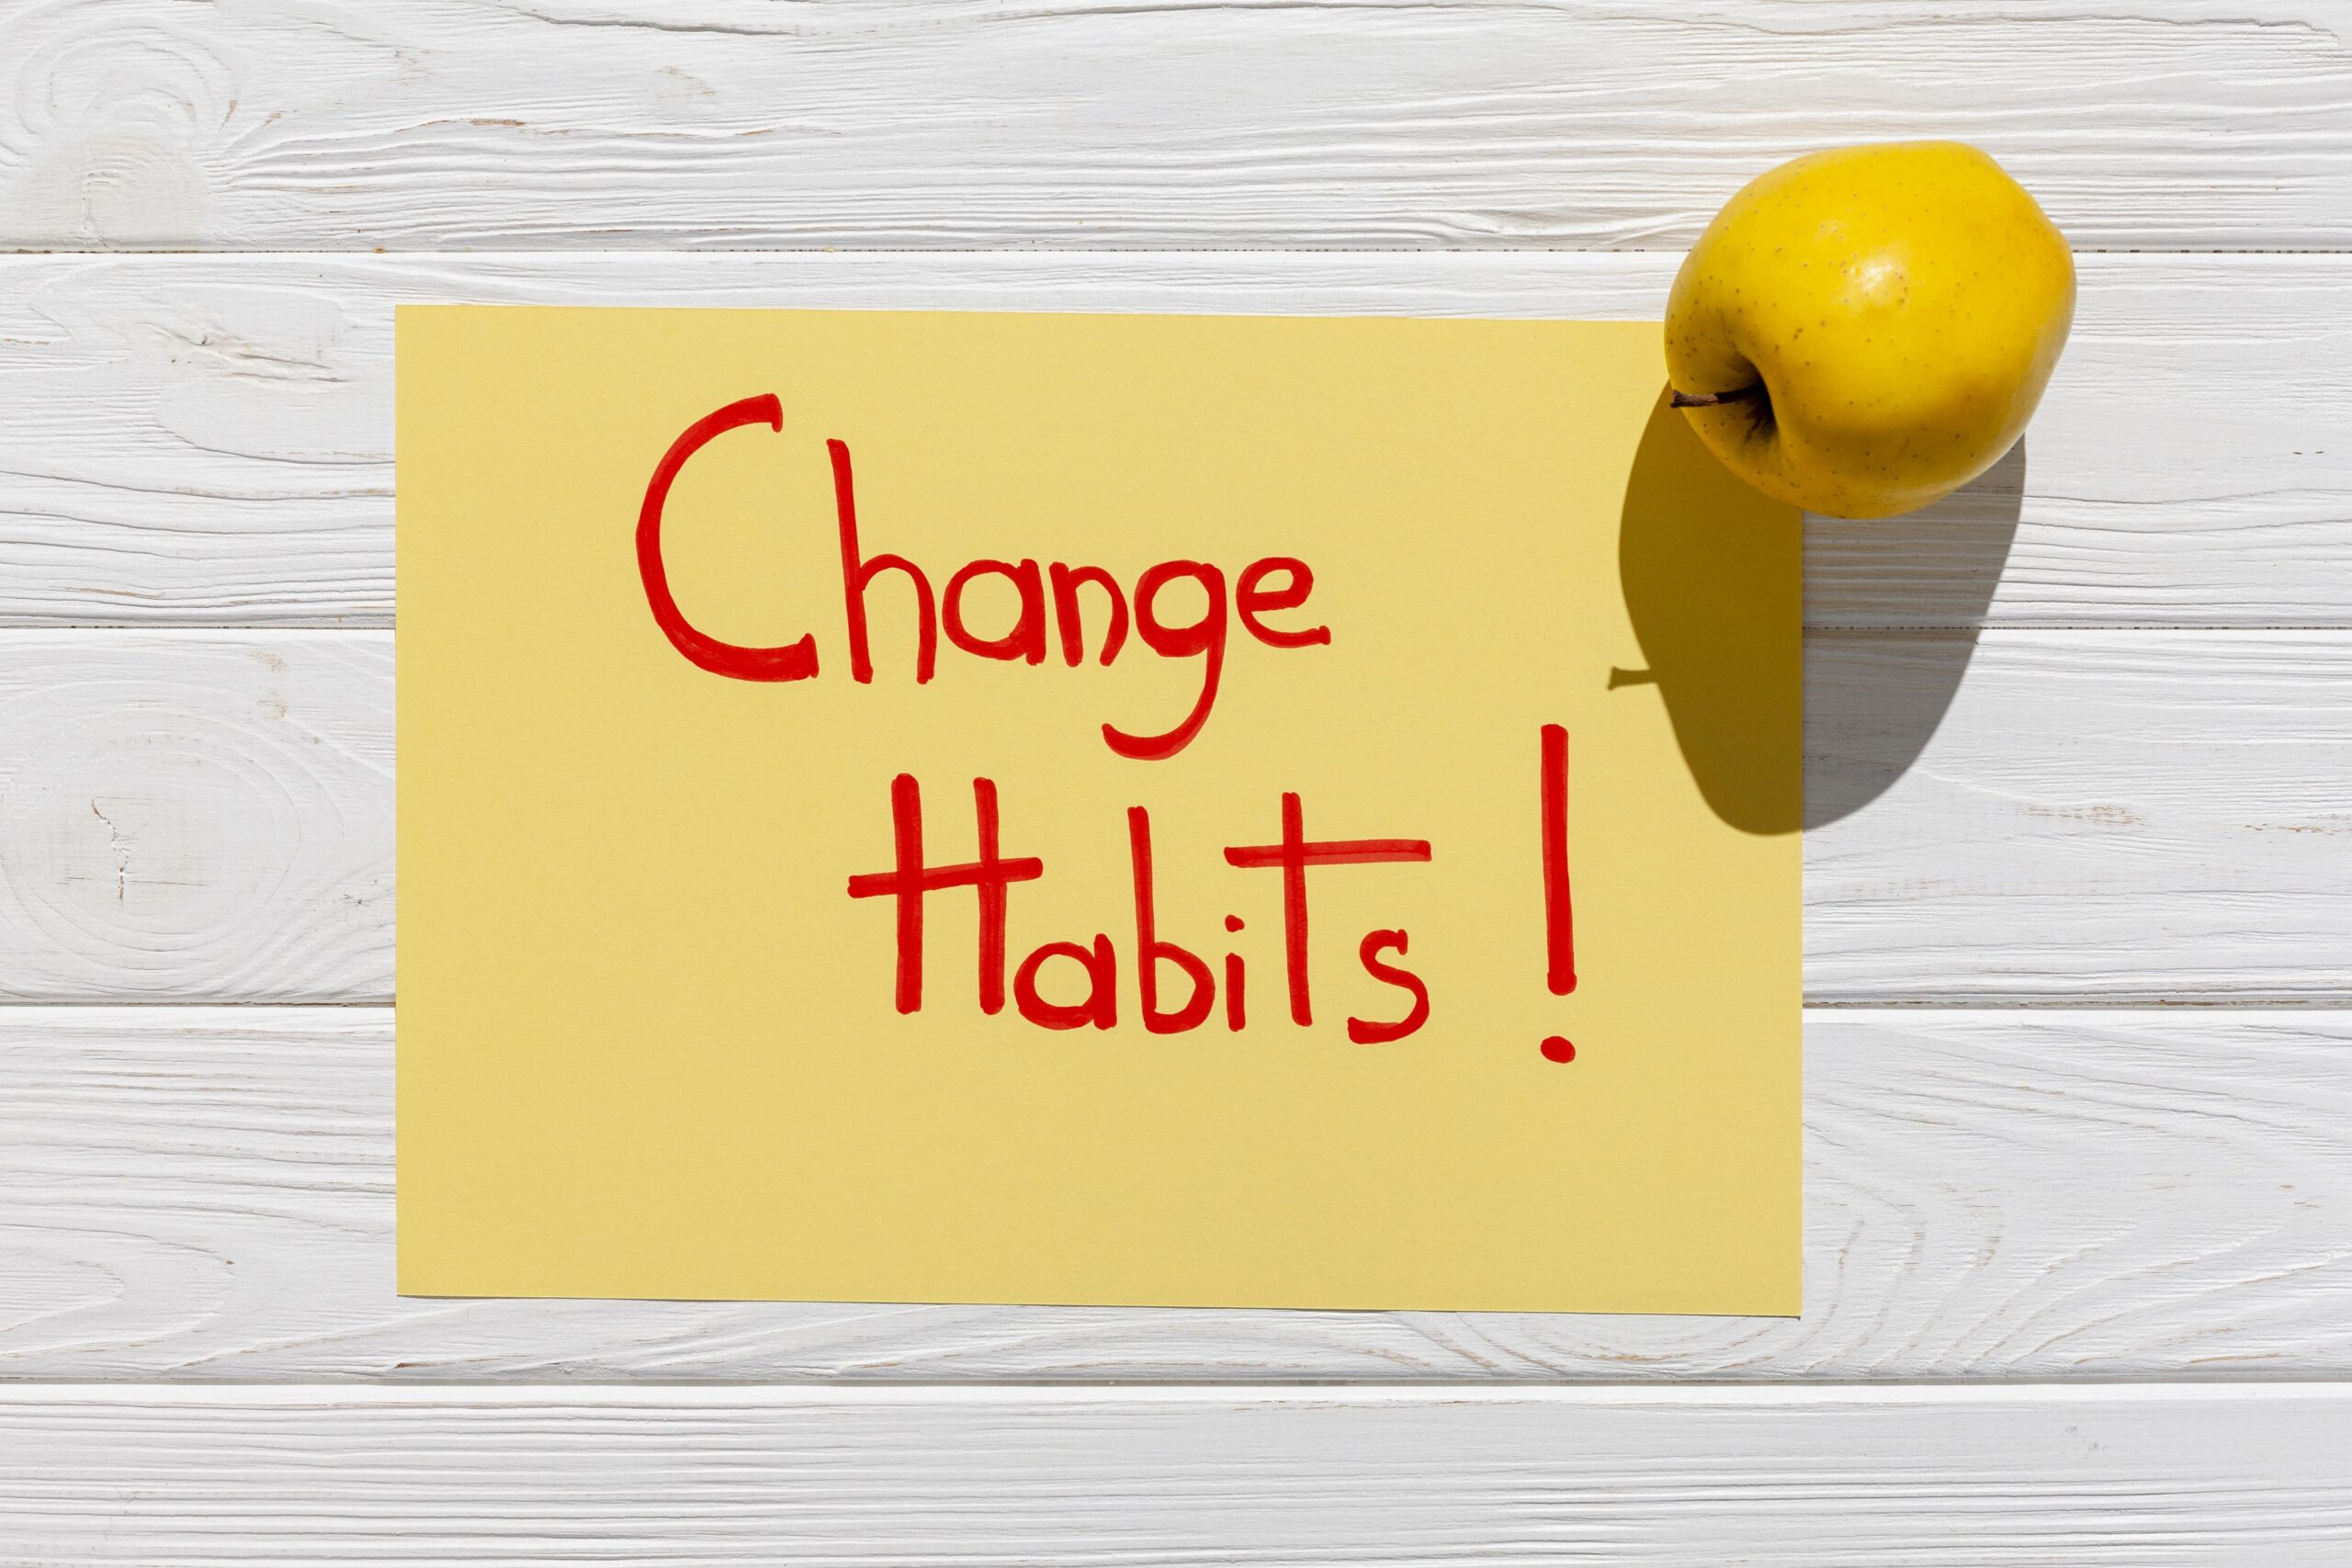 Change the habits